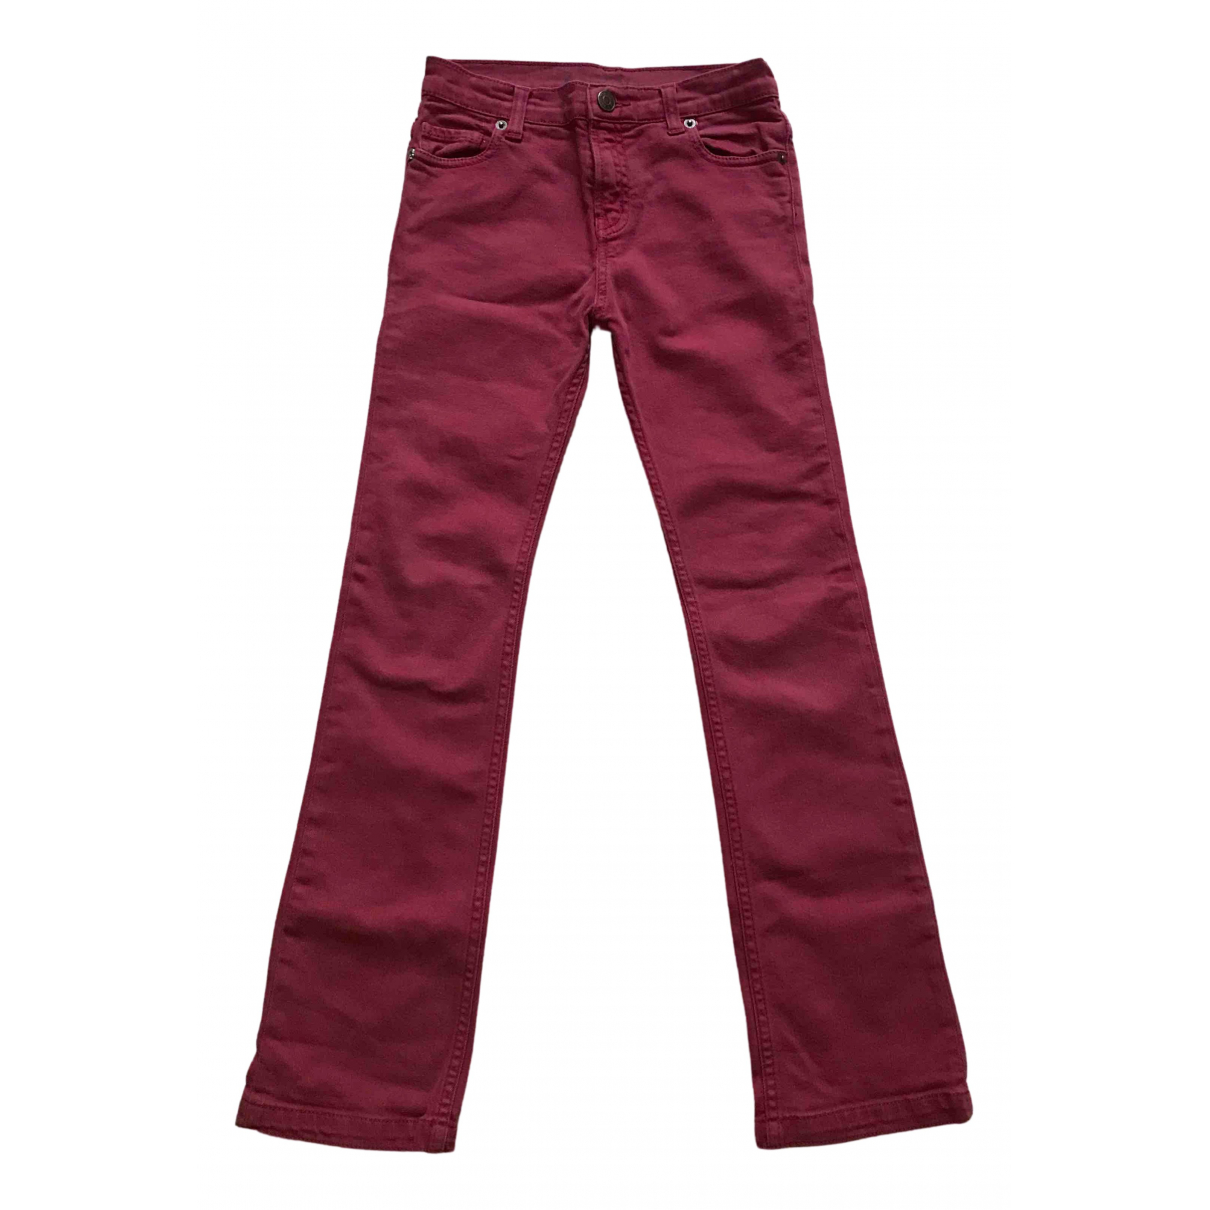 Zadig & Voltaire \N Cotton Trousers for Kids 10 years - up to 142cm FR